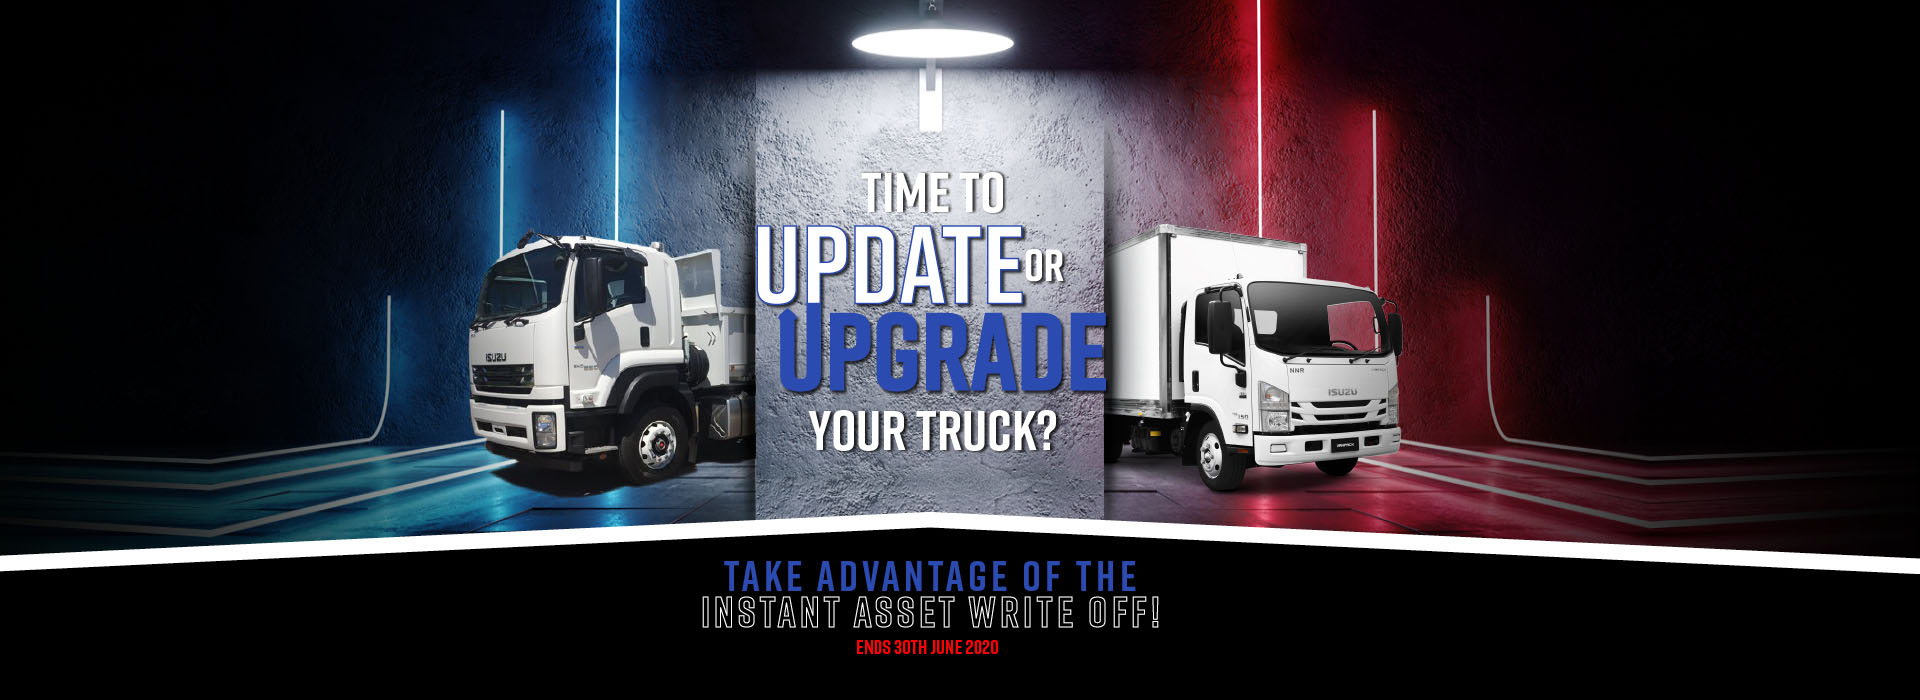 Update or Upgrade Your Truck